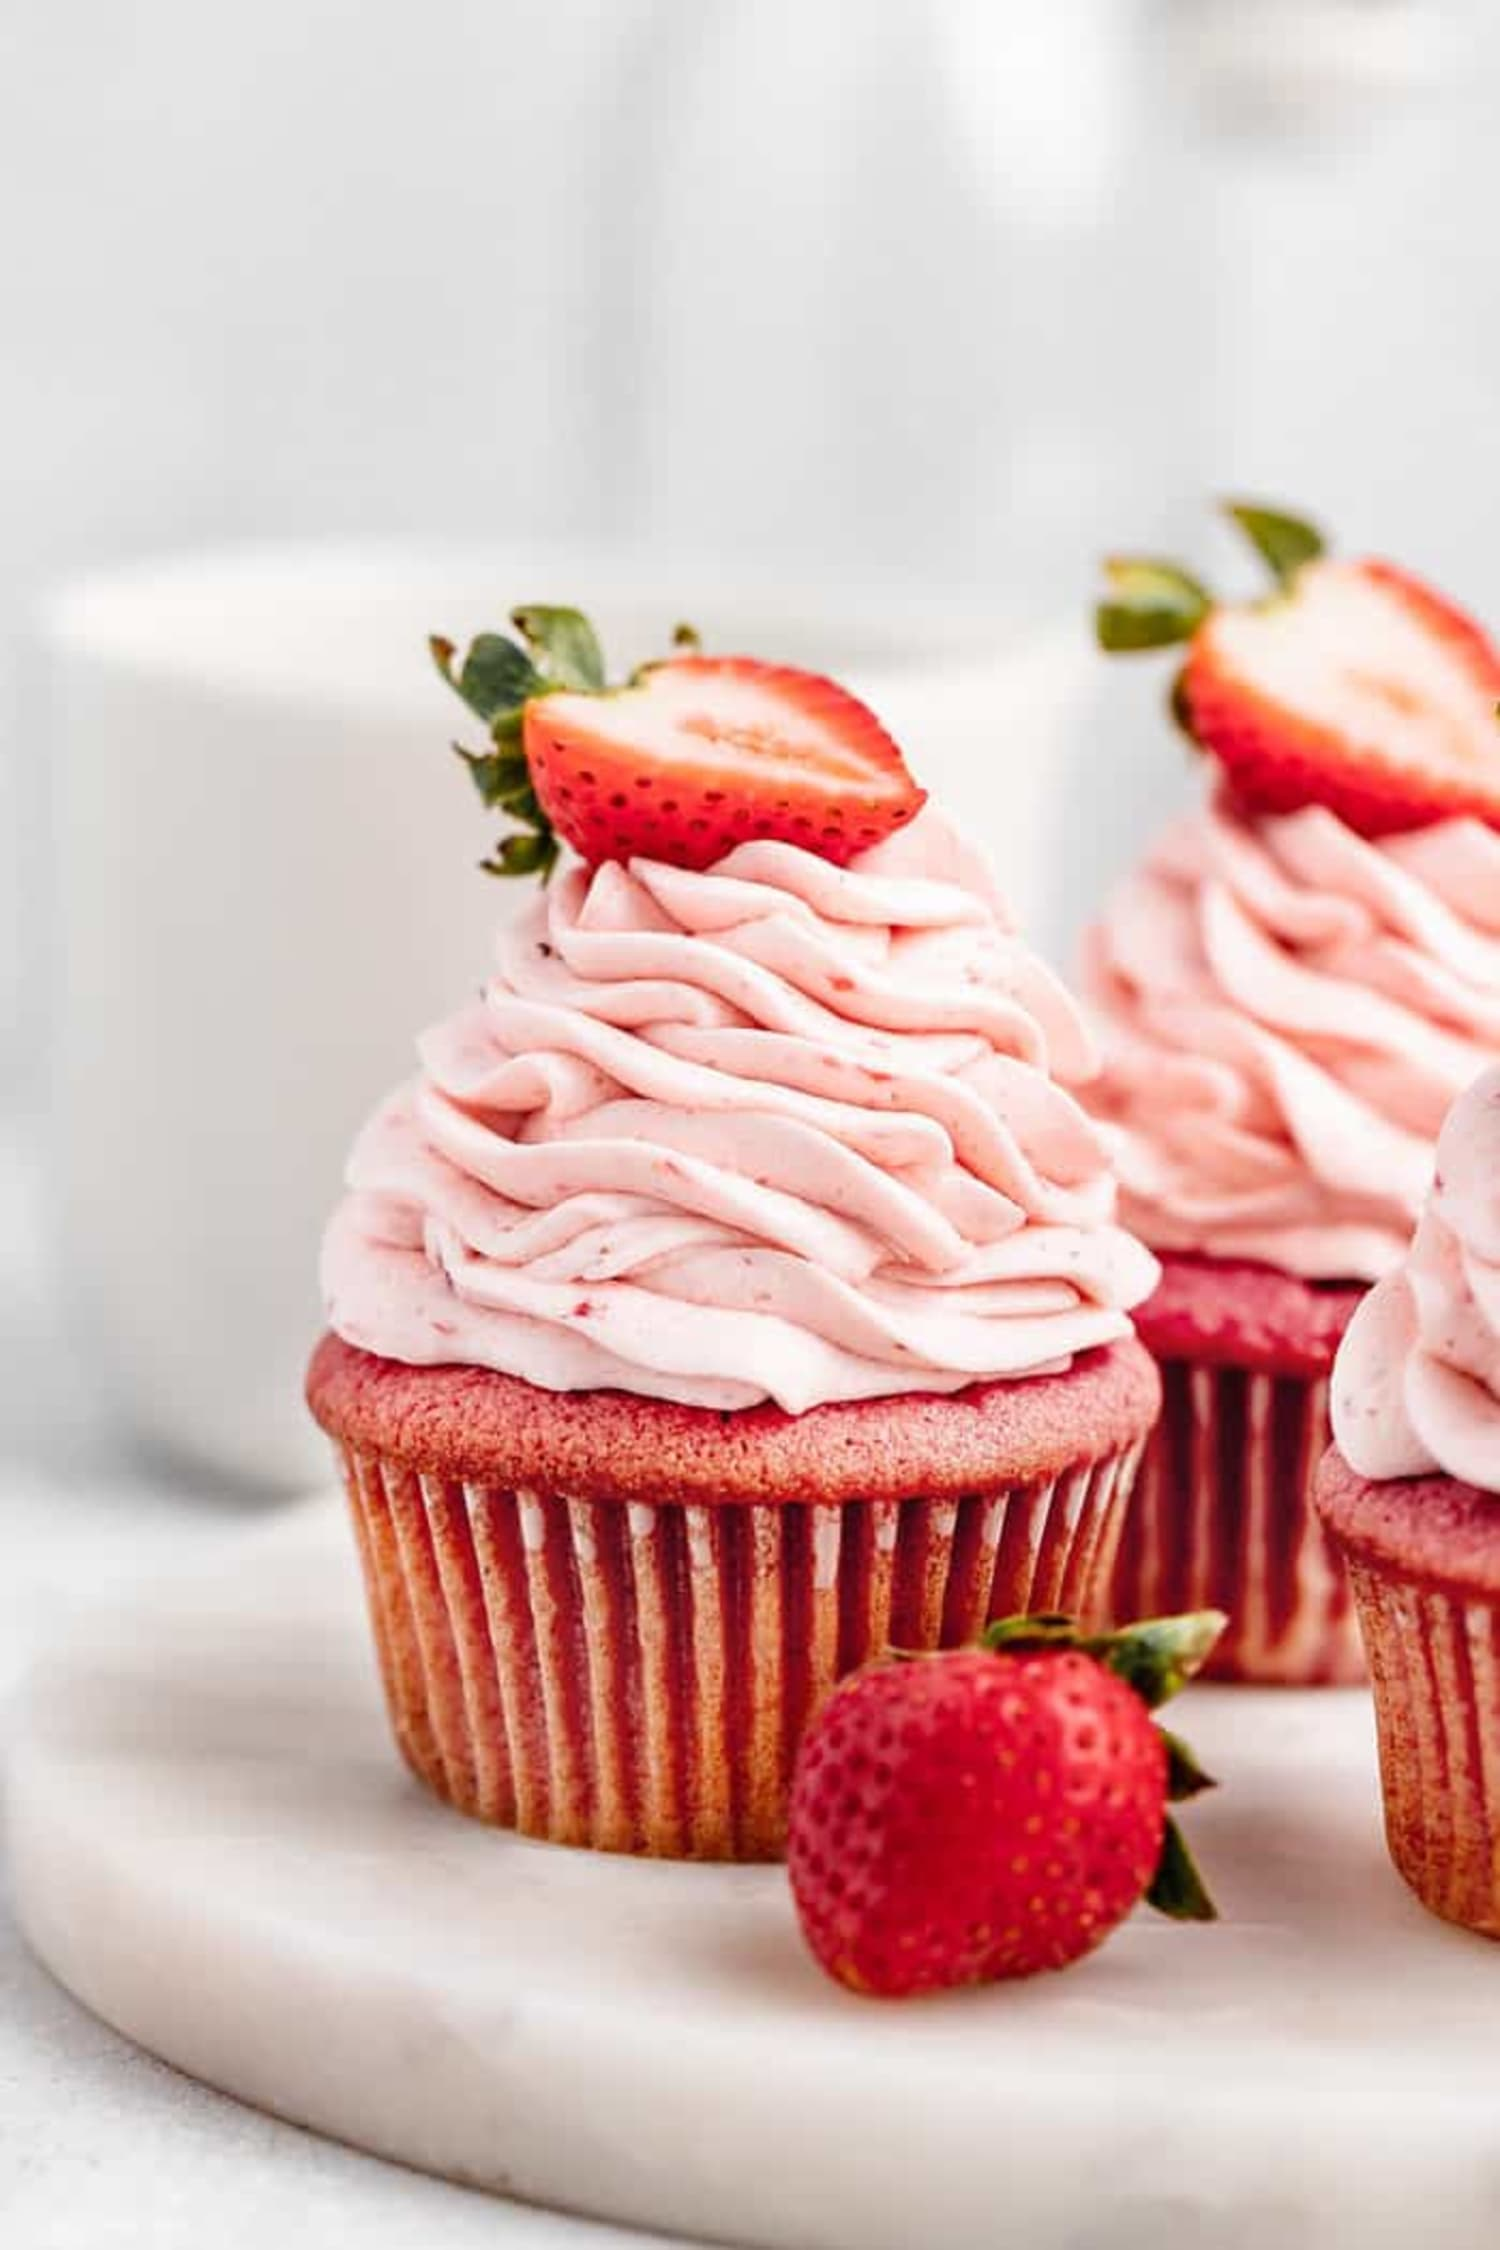 These Strawberry Cupcakes Are a Must-Make Summer Recipe